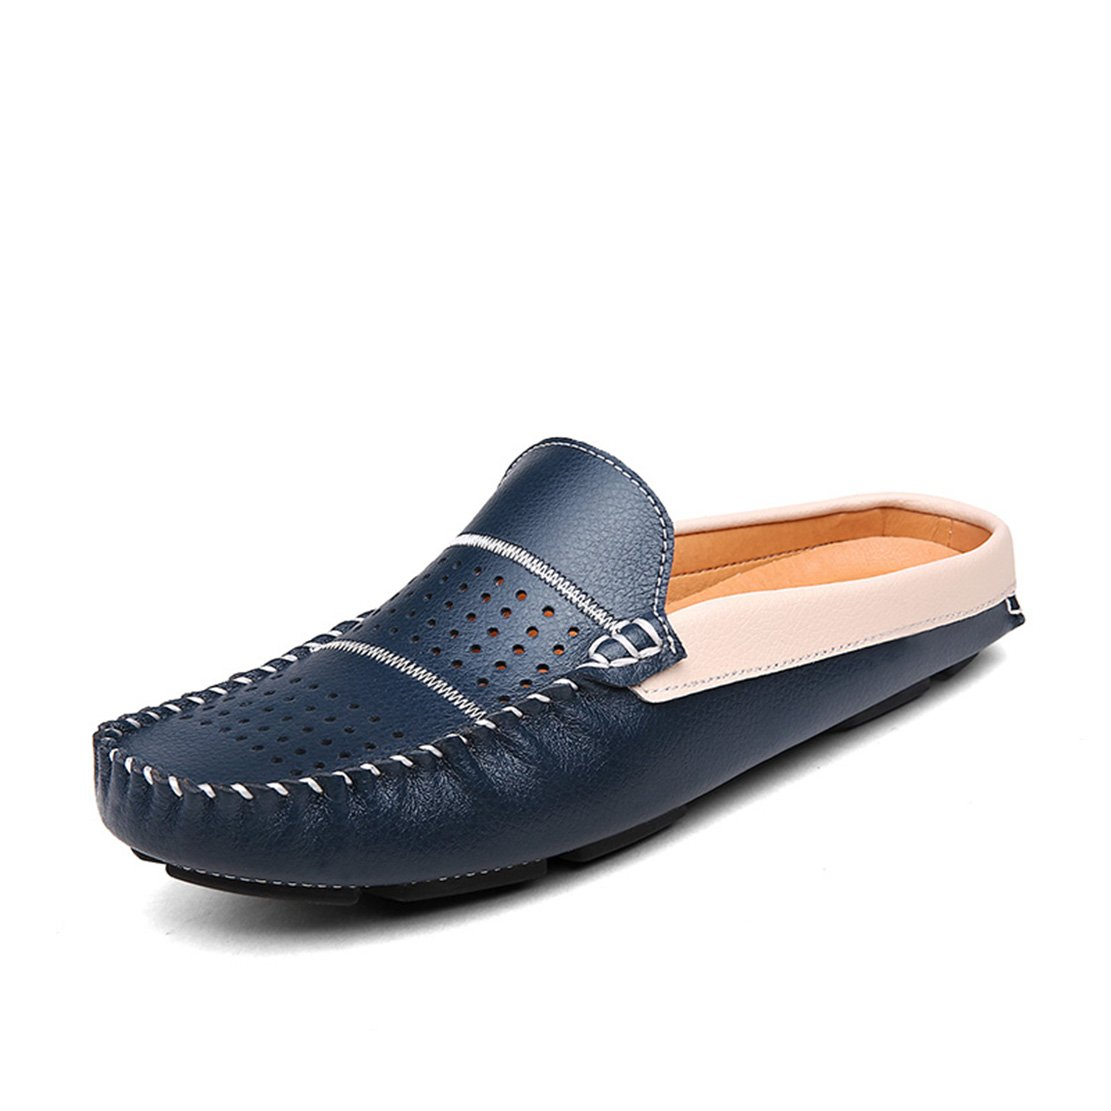 Go Tour Men's Comfortable Soft Scuff Leather Slippers Slip-on Loafters Shoes Blue 43